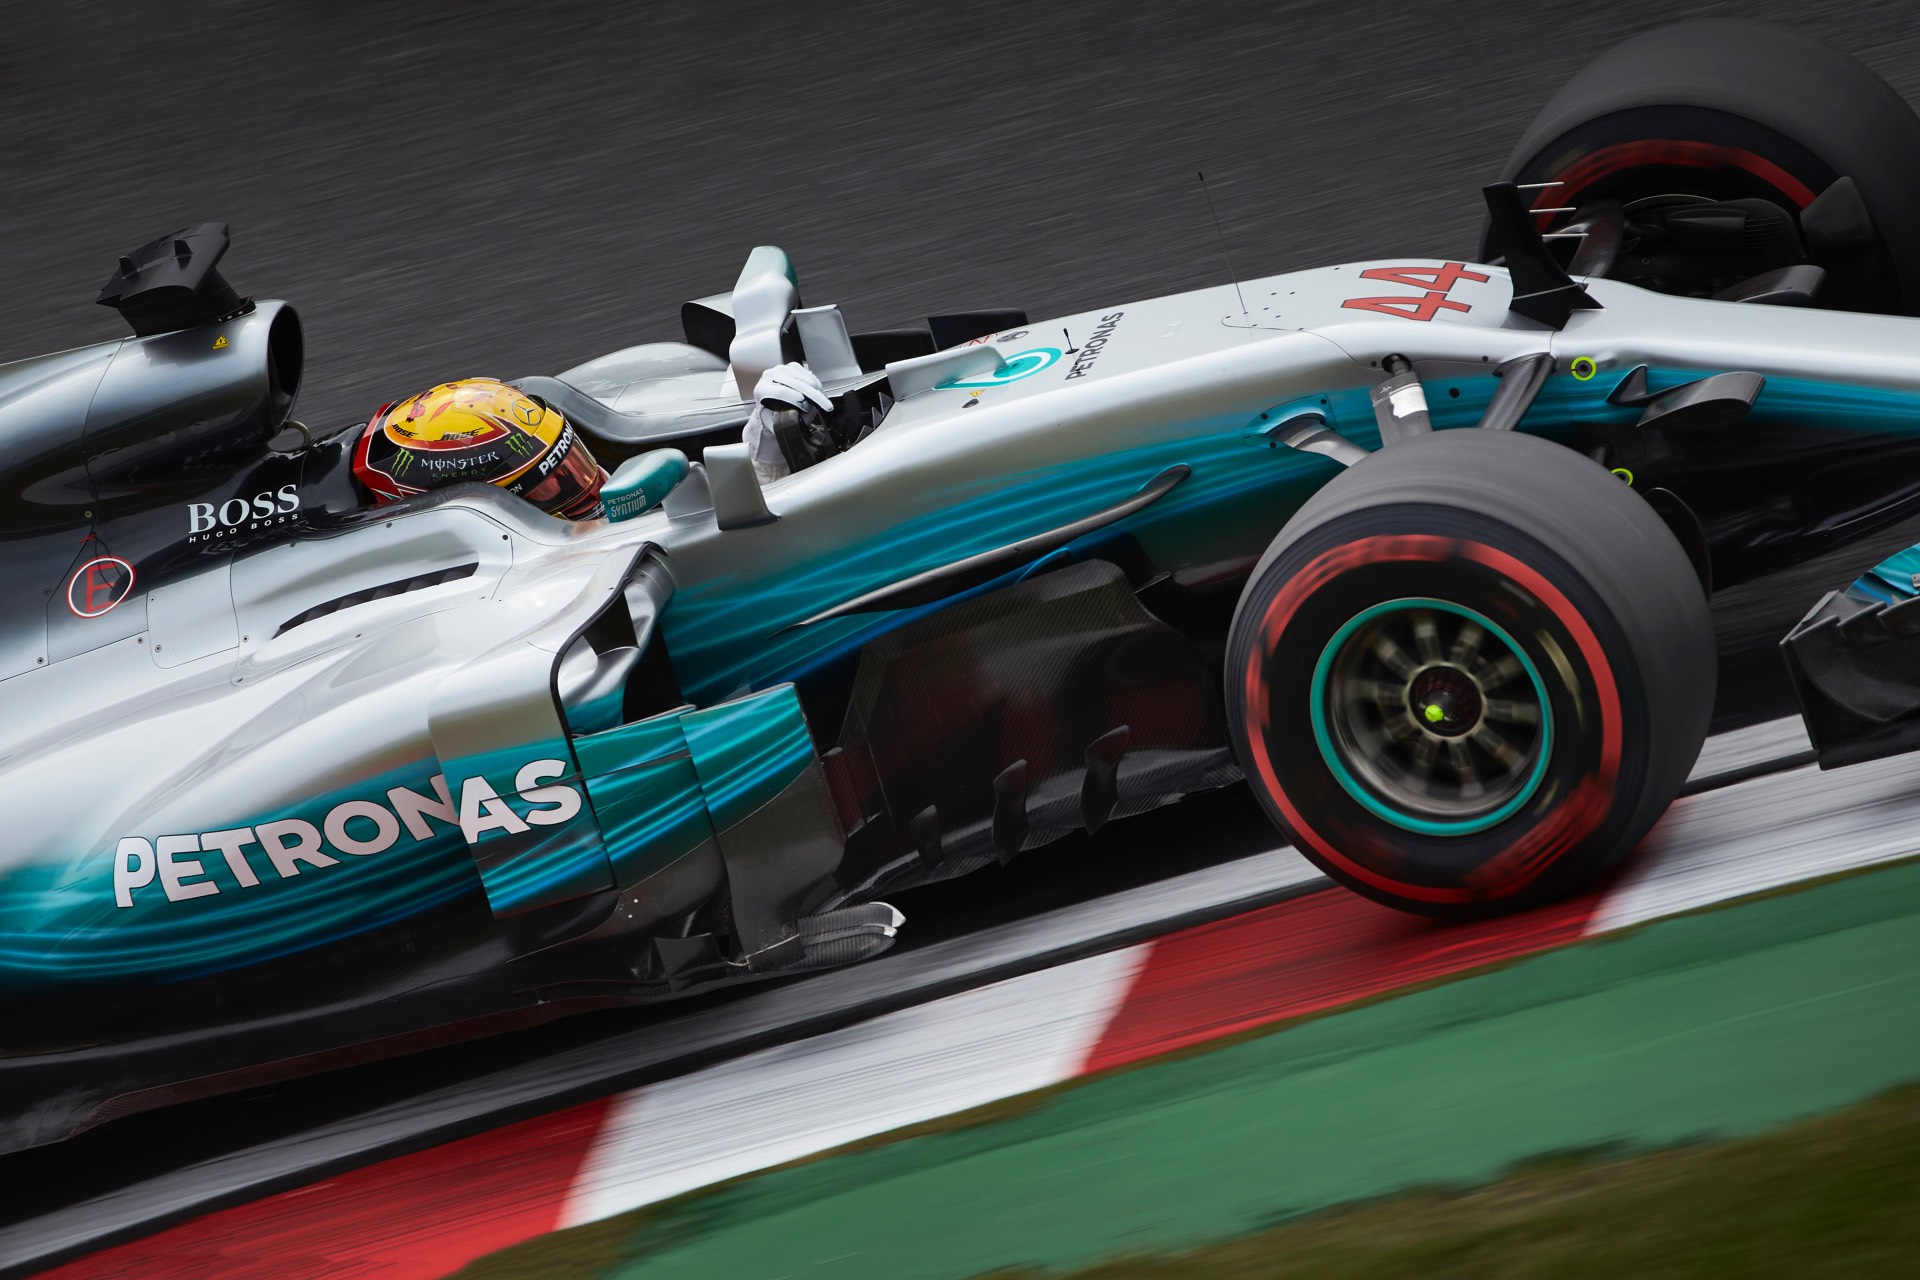 2017 Japanese Grand Prix, Saturday – Steve Etherington